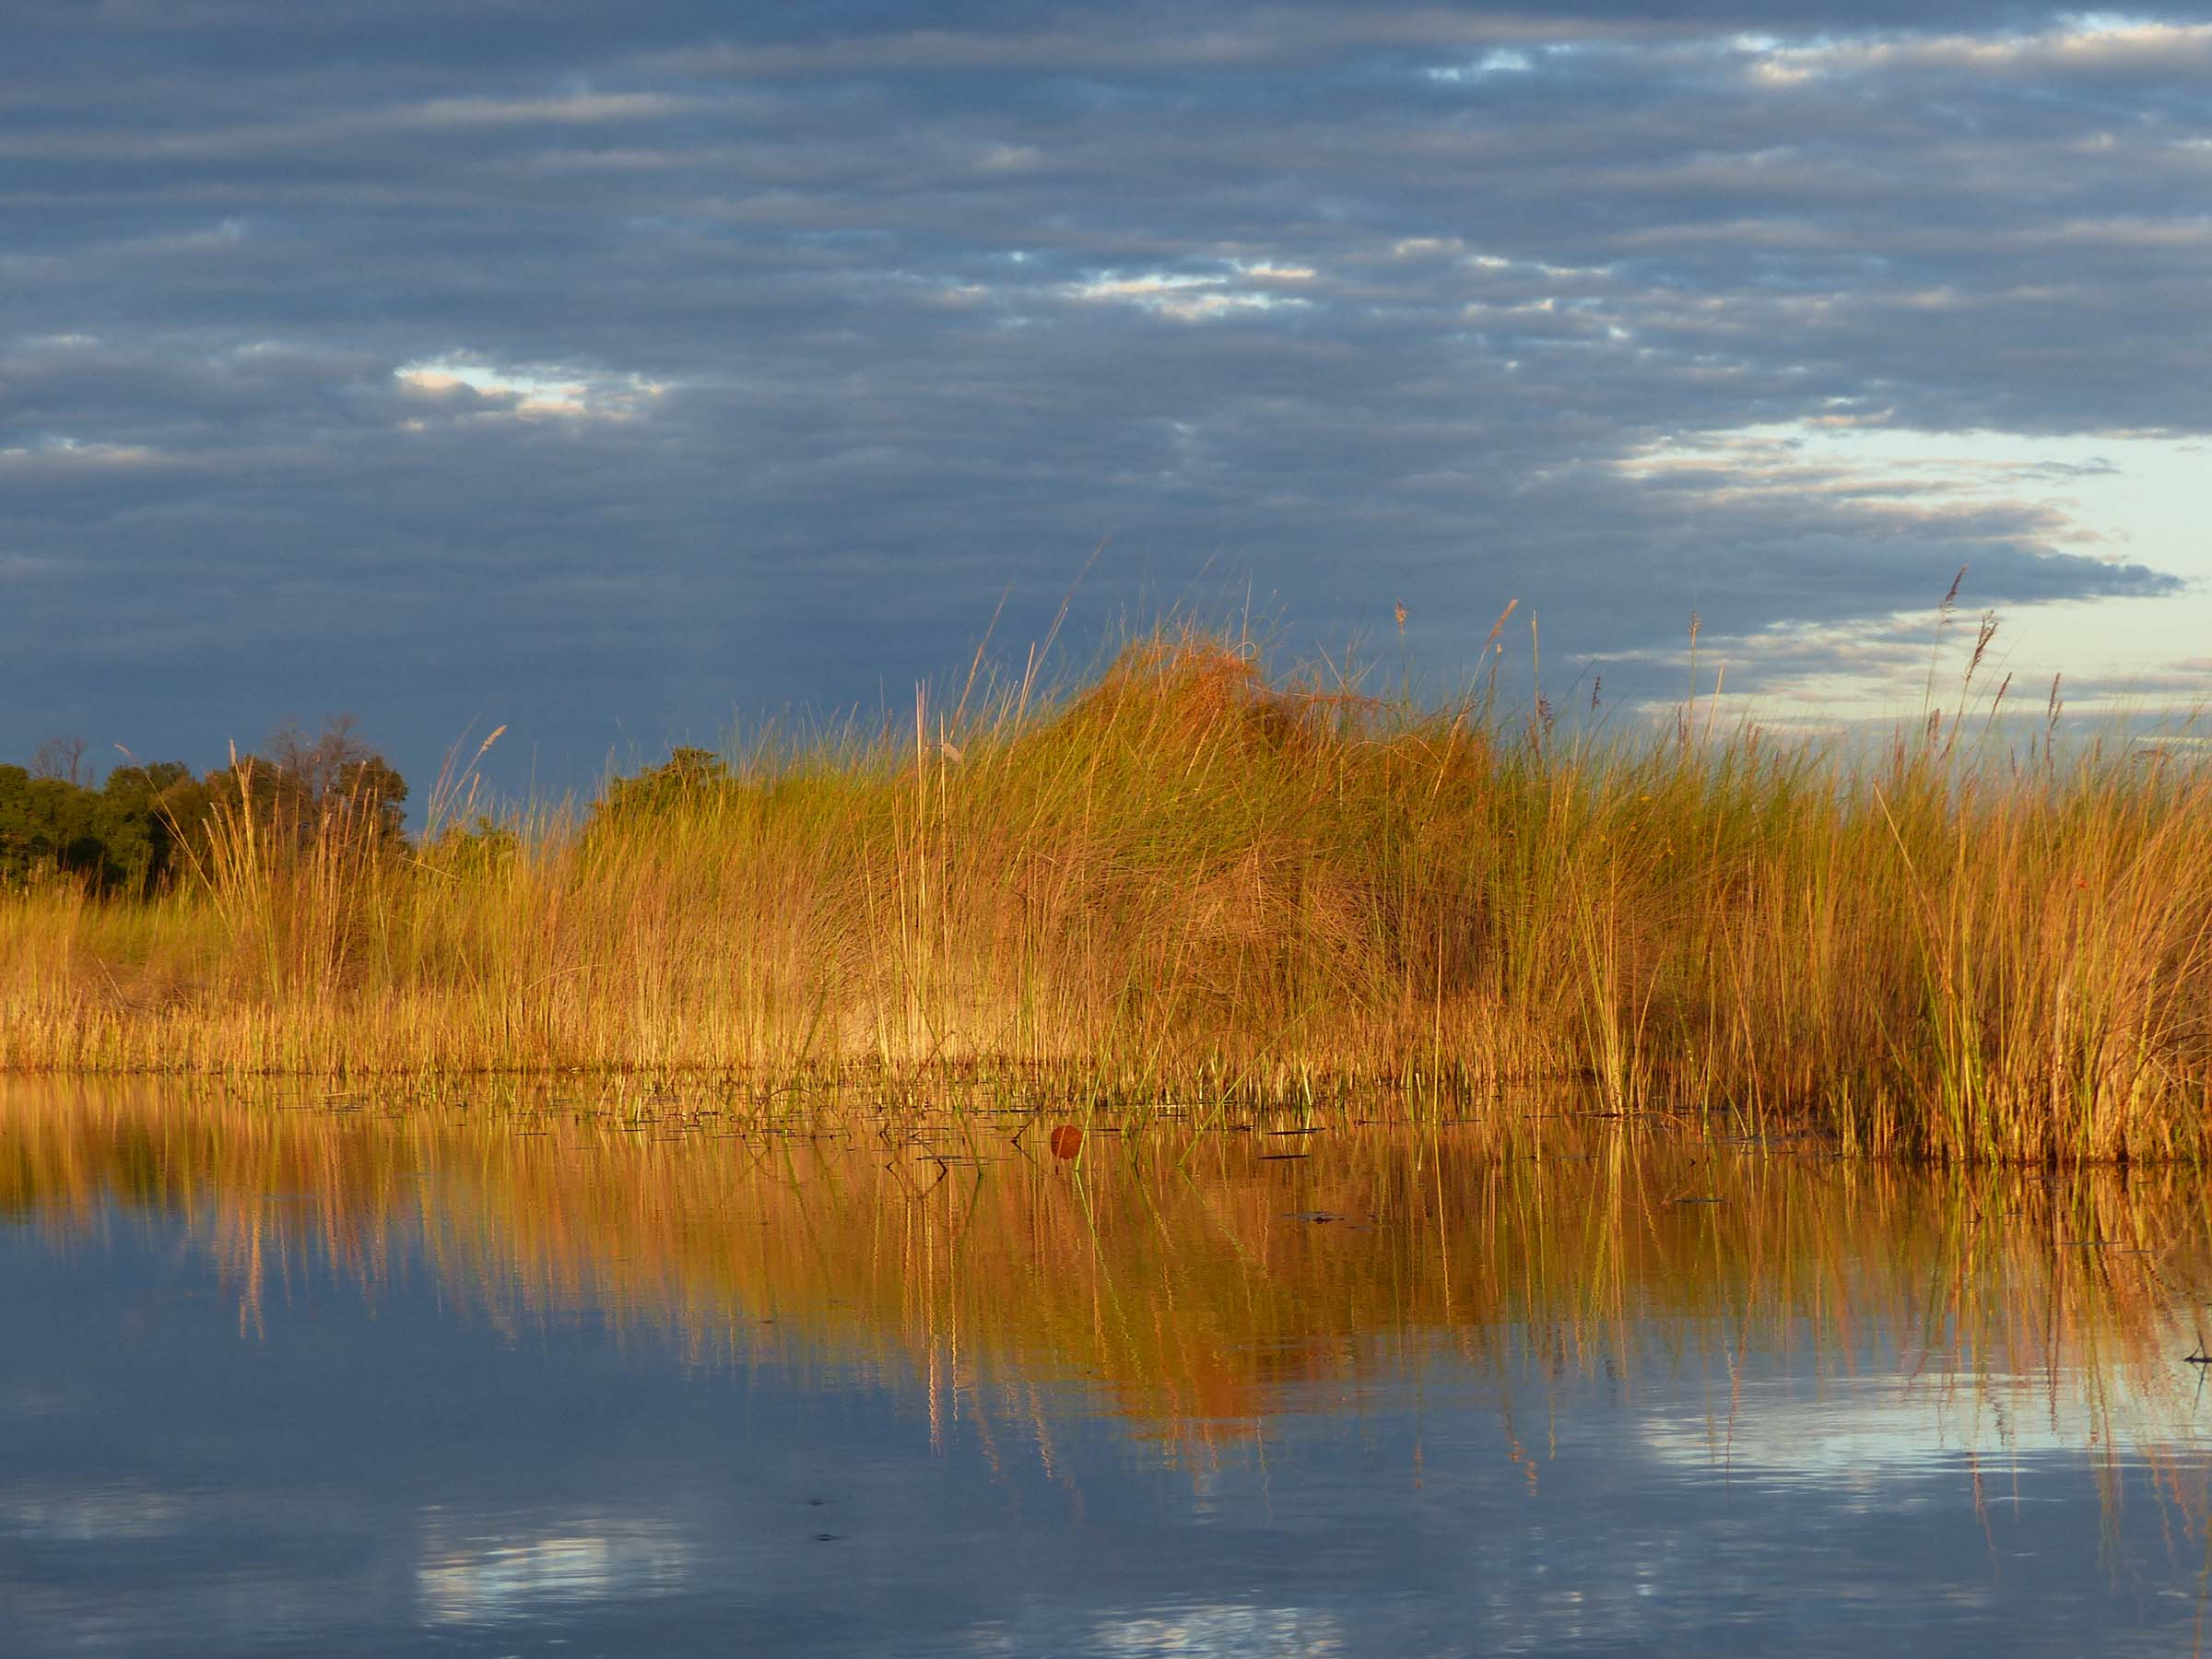 Bright yellow reeds reflected in water